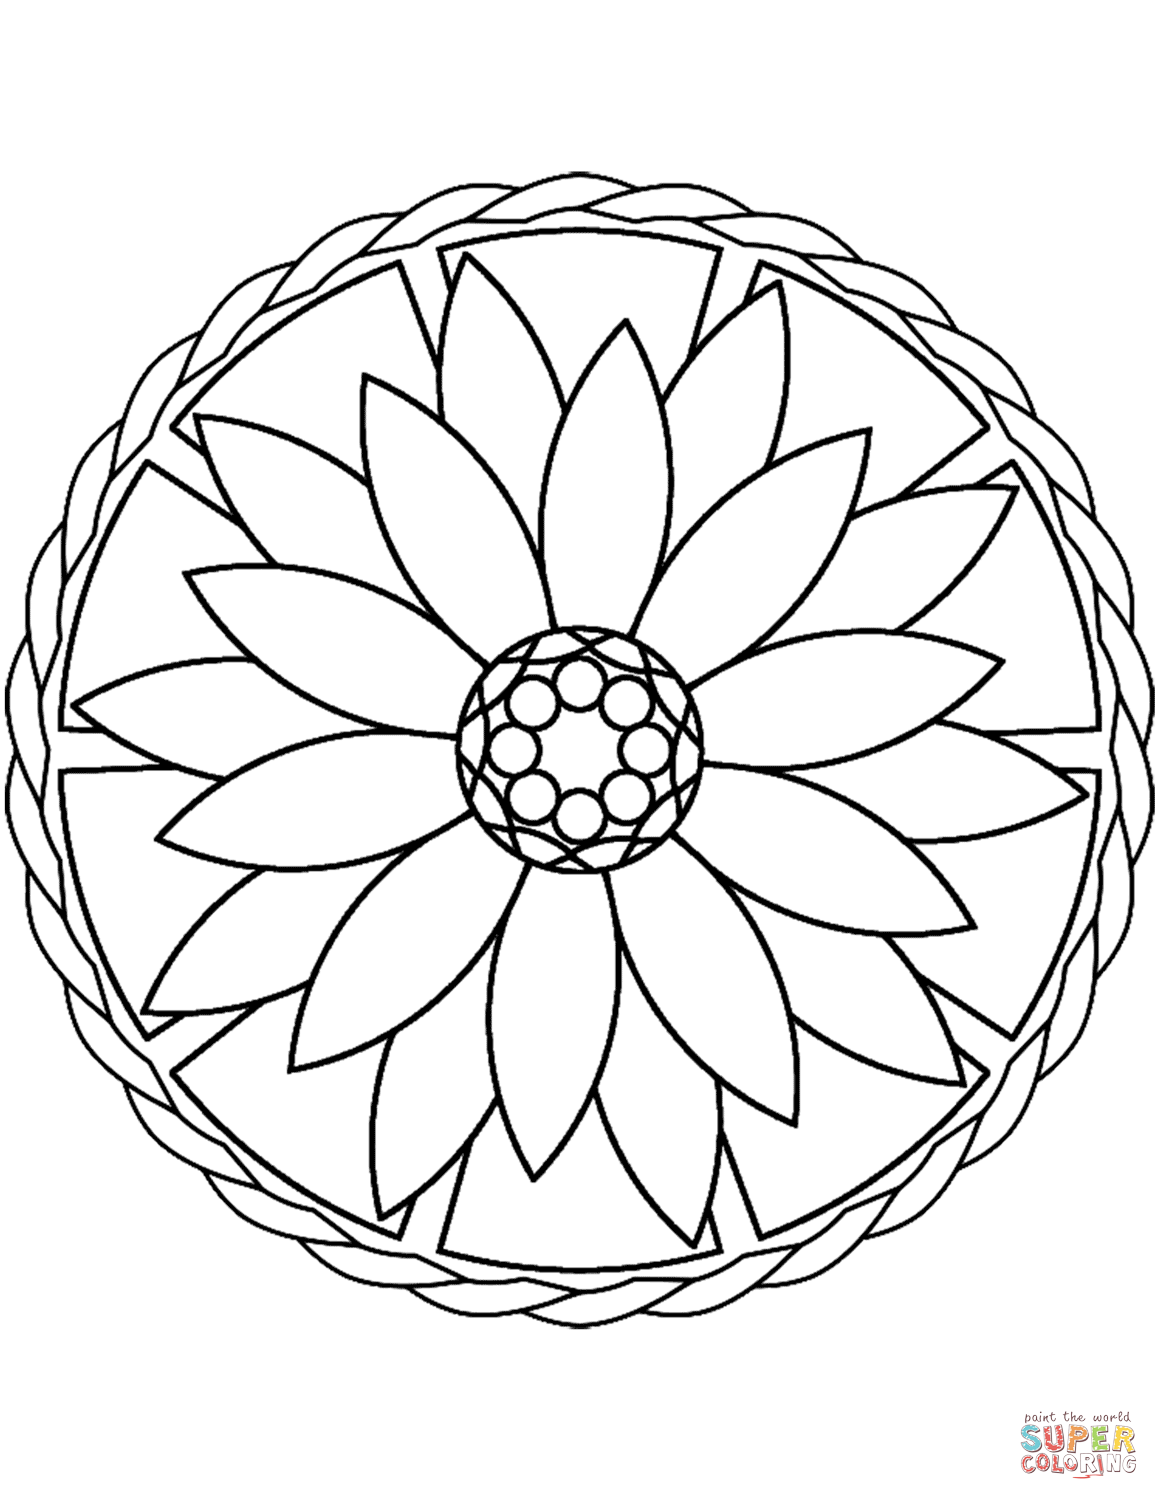 coloring mandala simple colouring books and pages coloring mandala simple